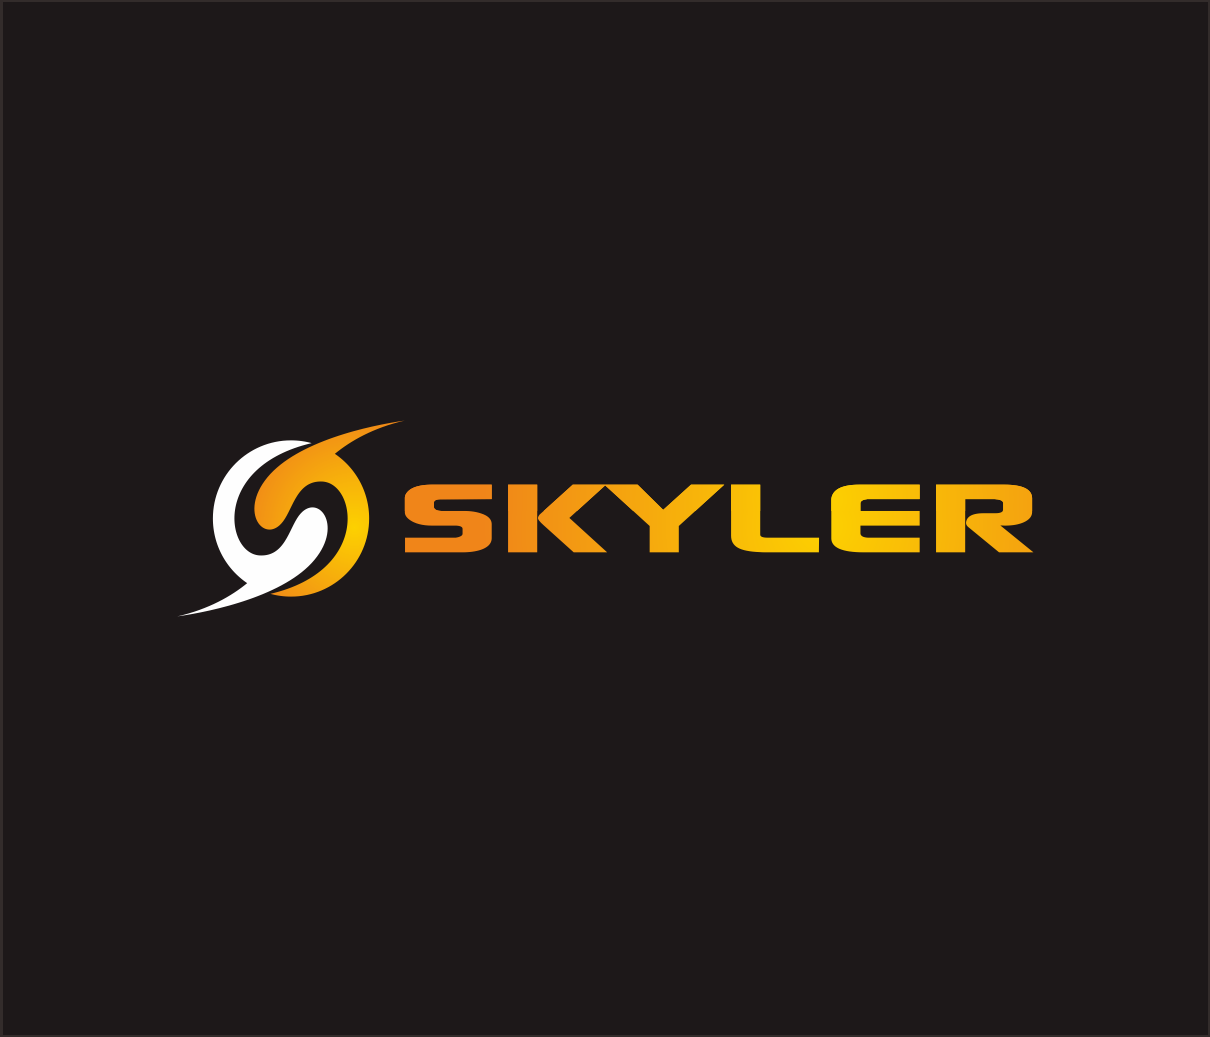 Logo Design by Armada Jamaluddin - Entry No. 155 in the Logo Design Contest Artistic Logo Design for Skyler.Asia.